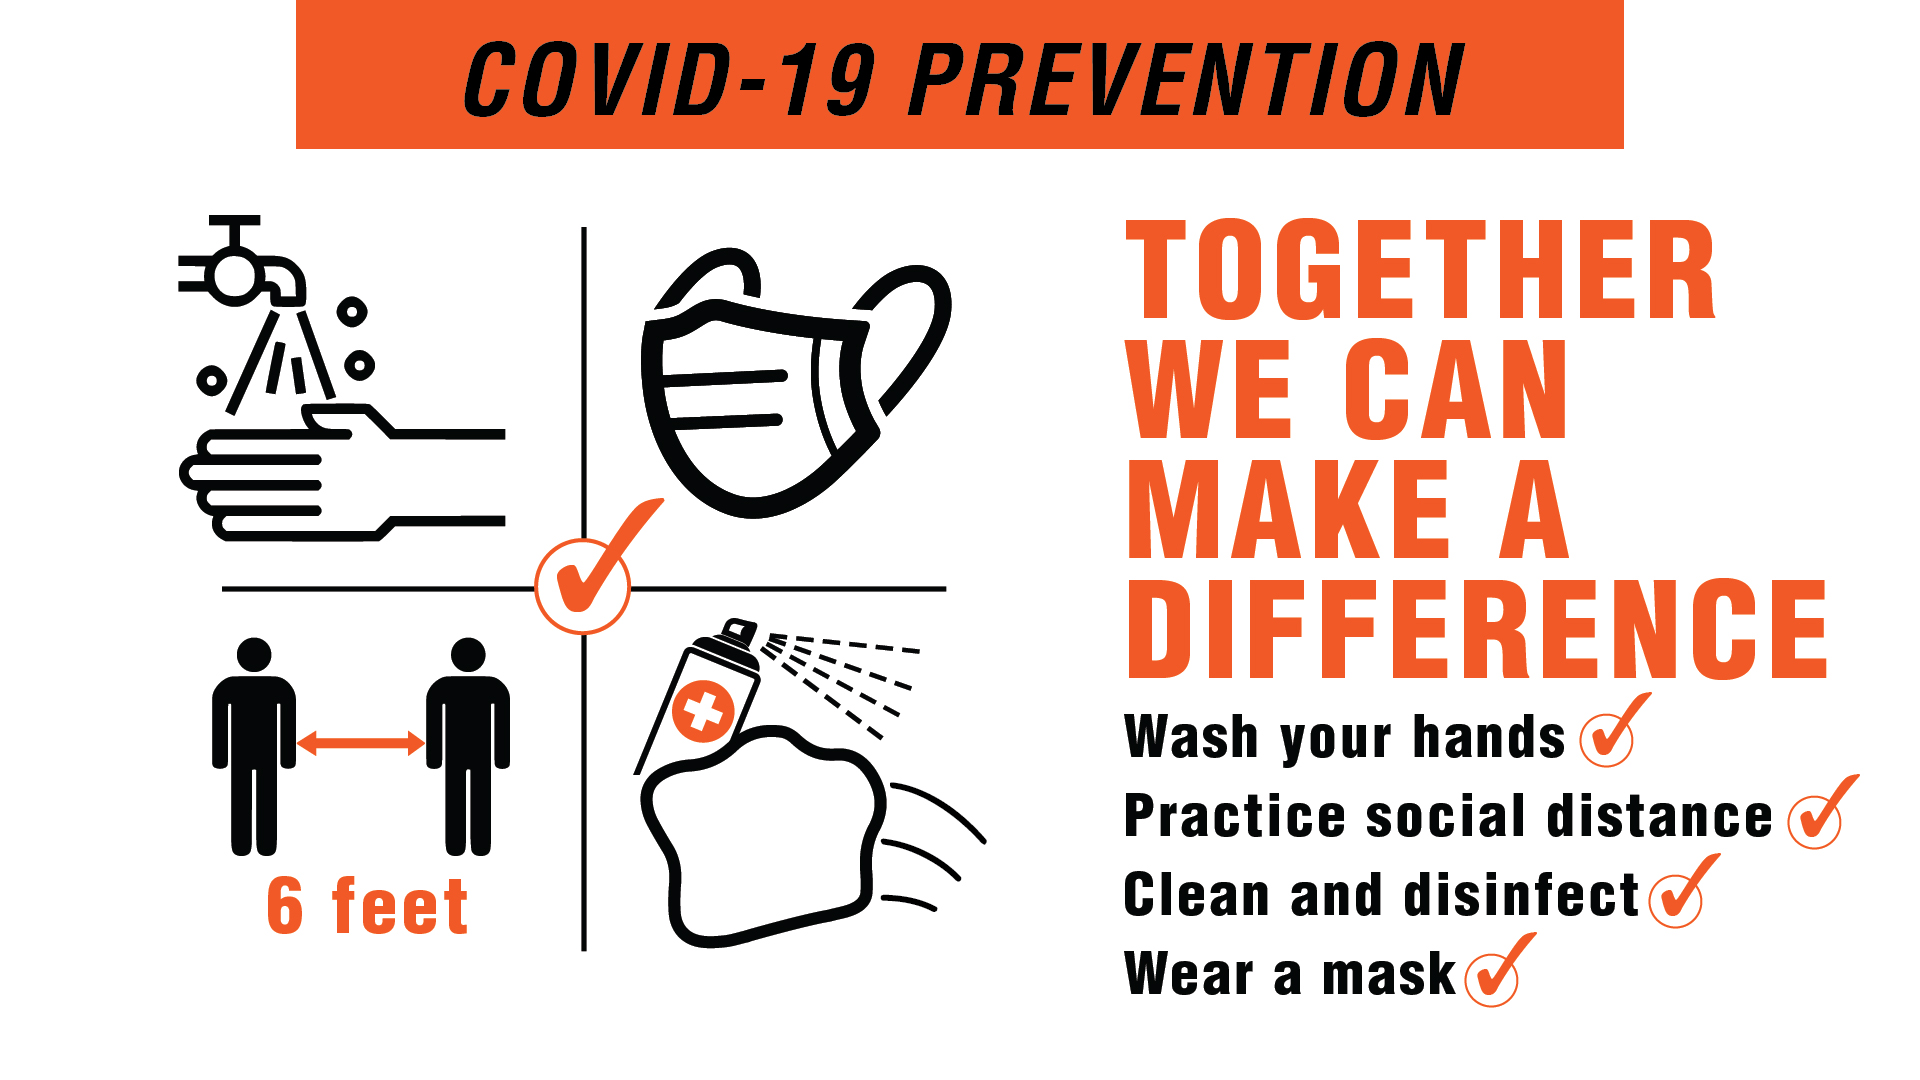 Covid-19 Prevention - Together We Can Digital Signage Image